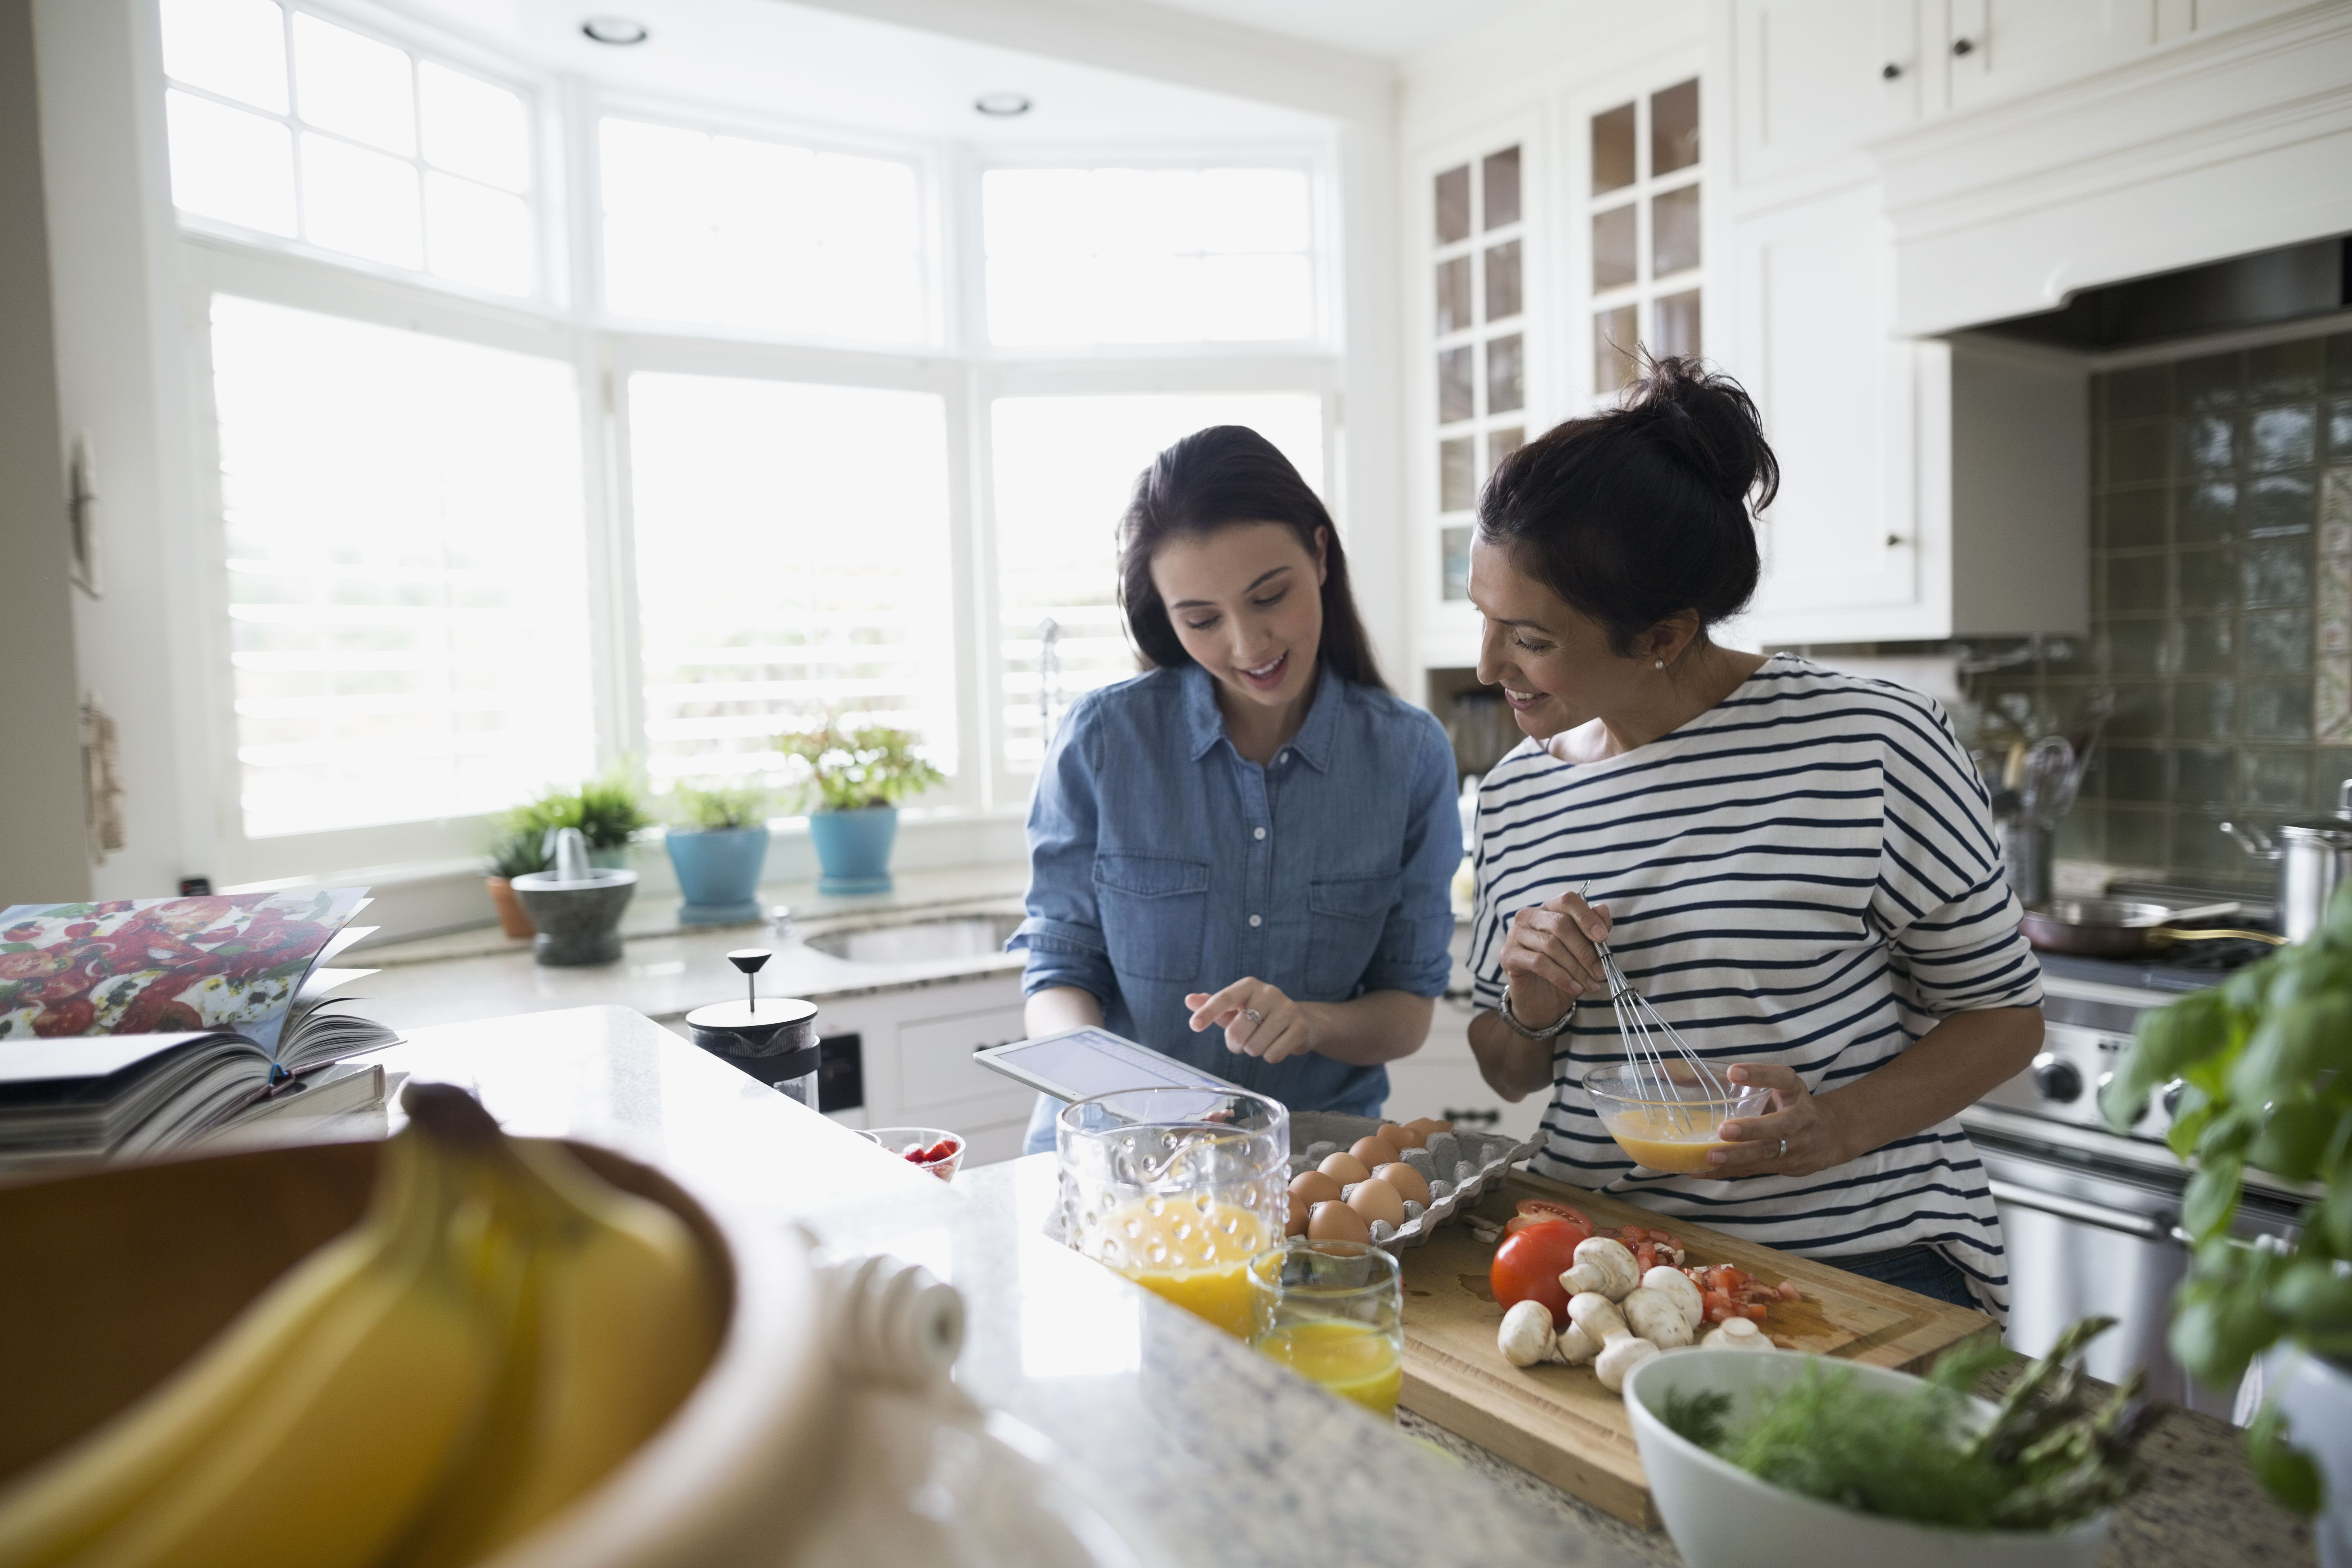 mother-and-daughter-cooking-with-recipe-in-kitchen-595347307-59dd5f72054ad900102dfac0.jpg